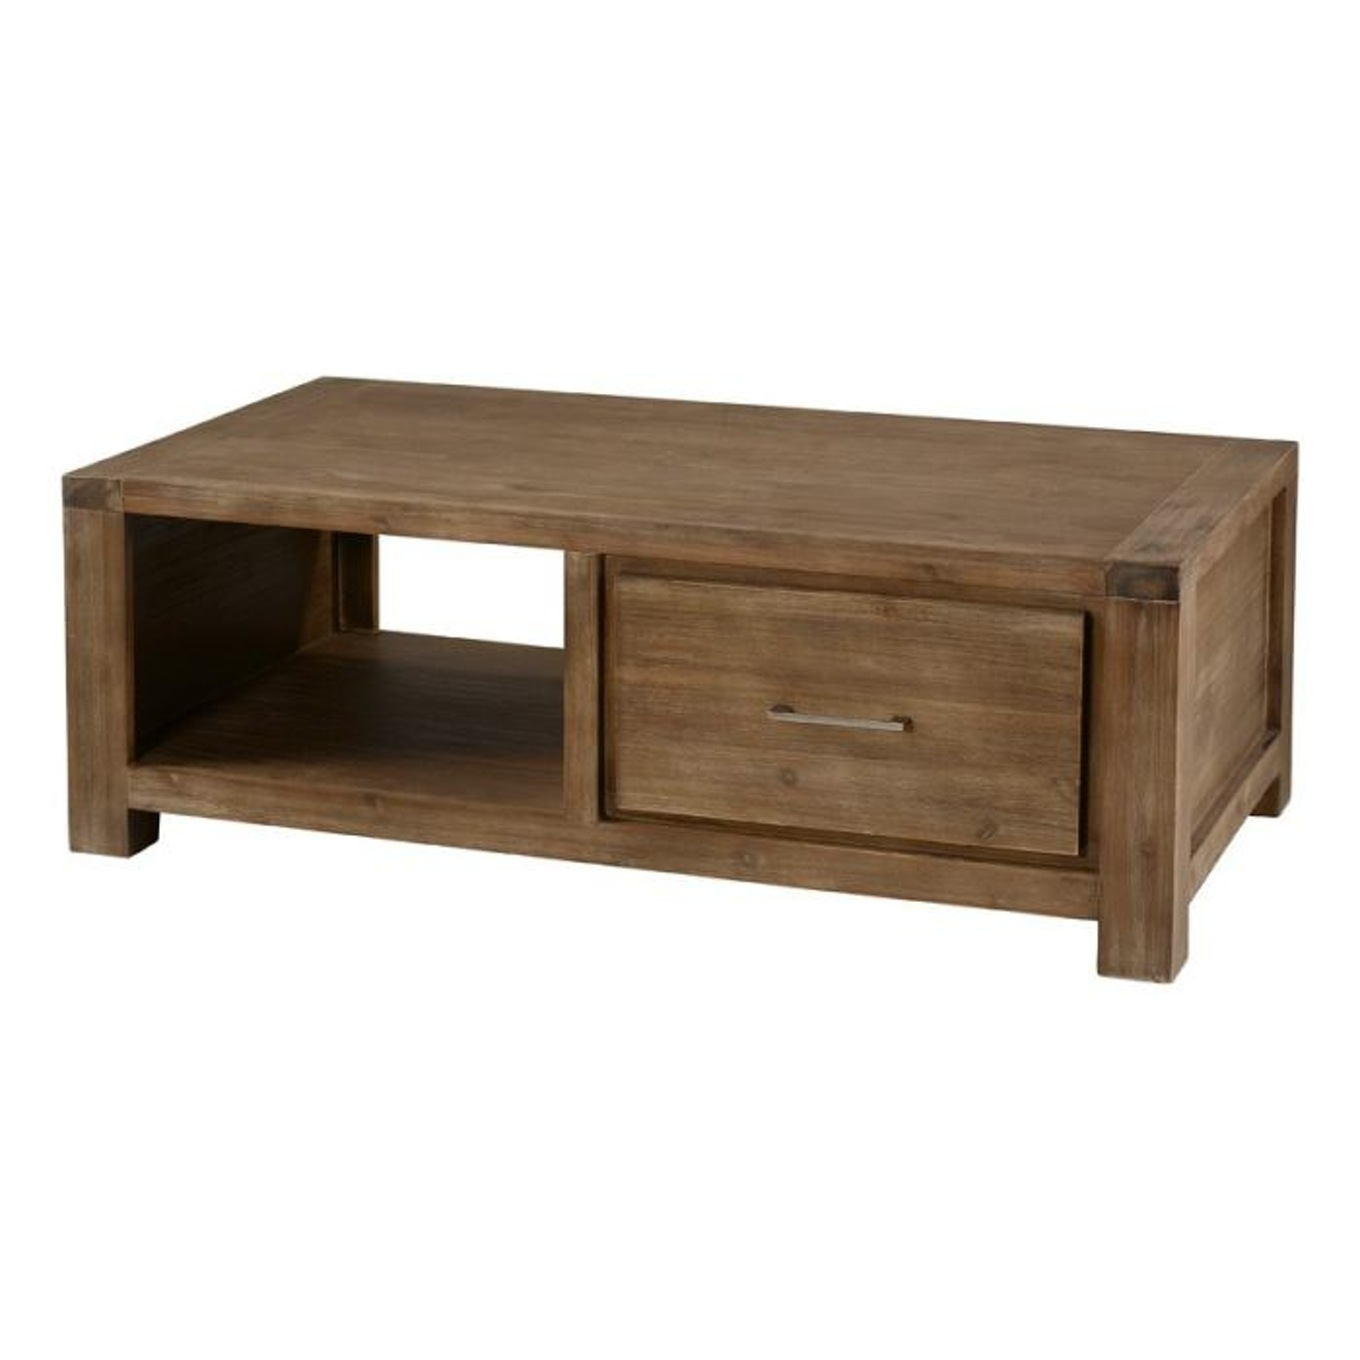 Table Basse Modulable Pas Cher Table Basse But Pas Cher